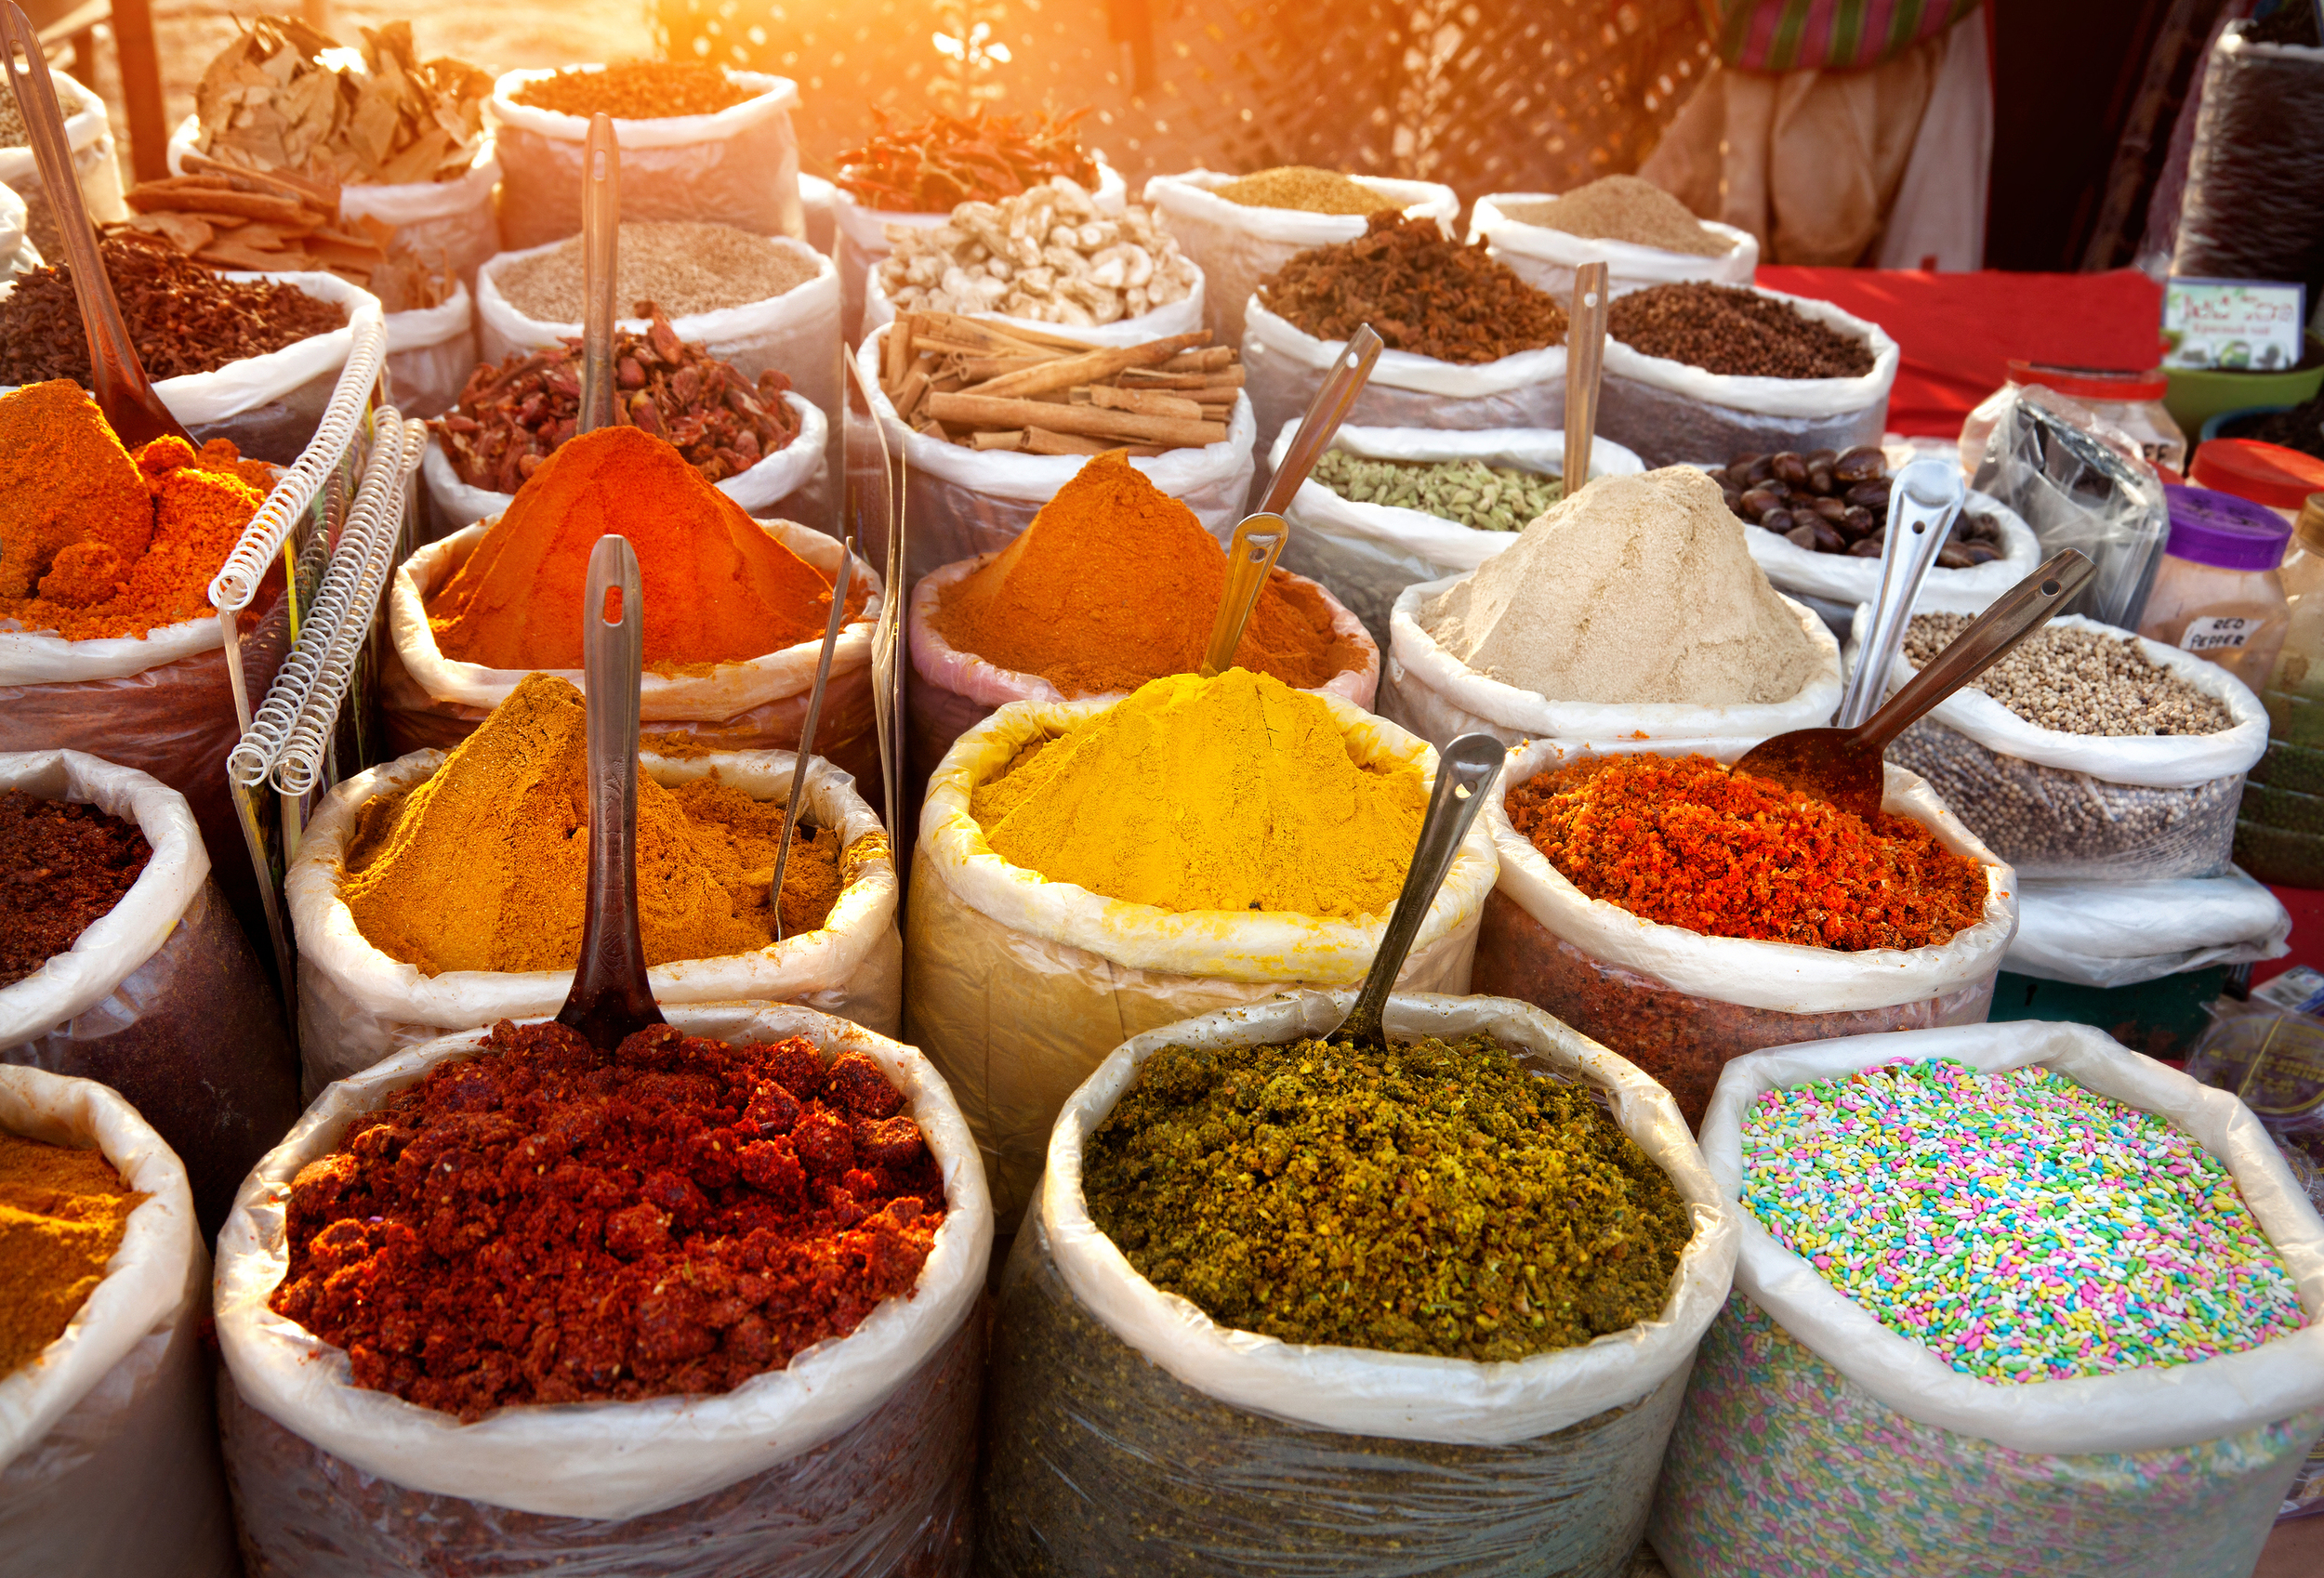 bigstock-Indian-Colored-Spices-55915160.jpg